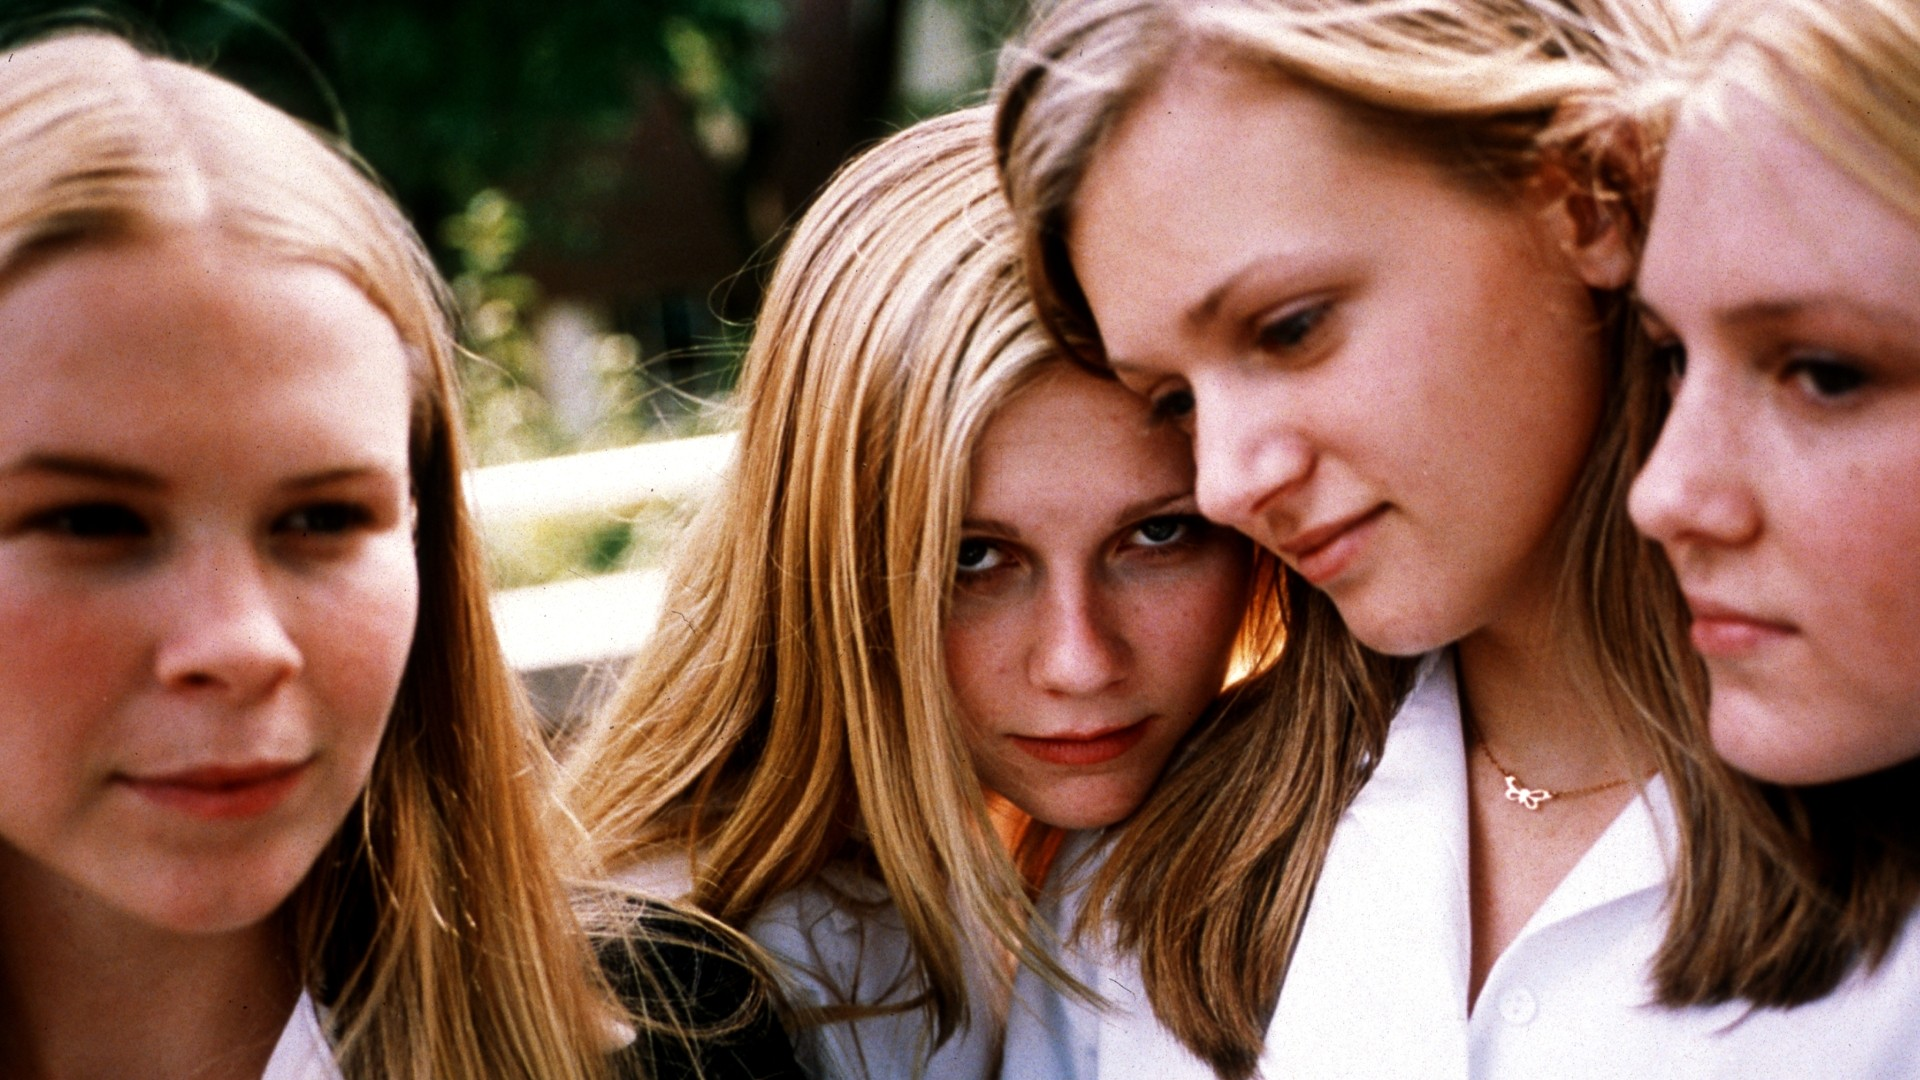 The Virgin Suicides : We Canu0026#39;t Hear the Mime!